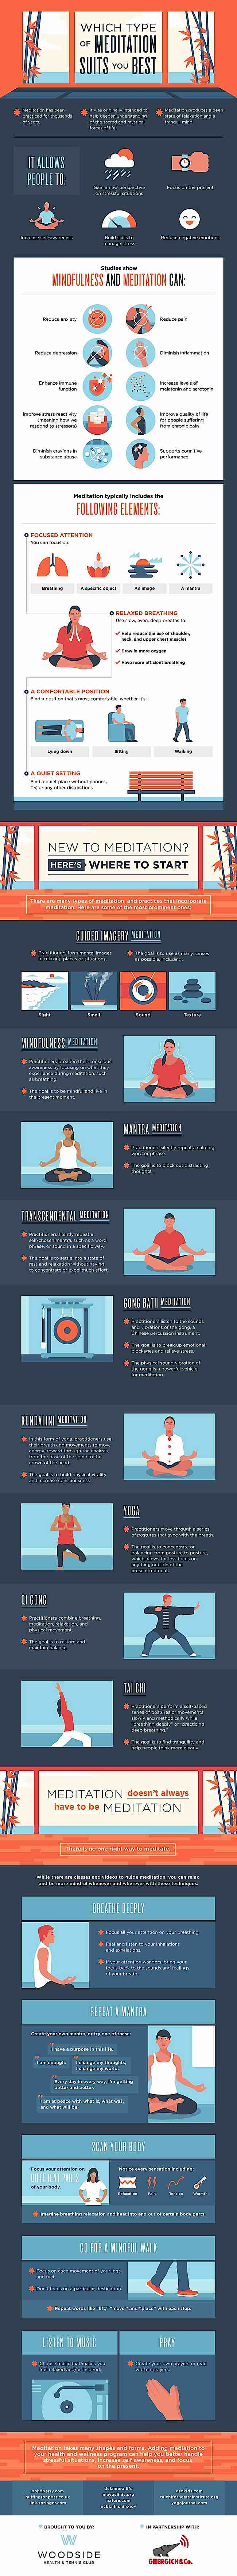 """Which type of meditation suits you best"" courtesy of Woodside Health & Tennis Club."